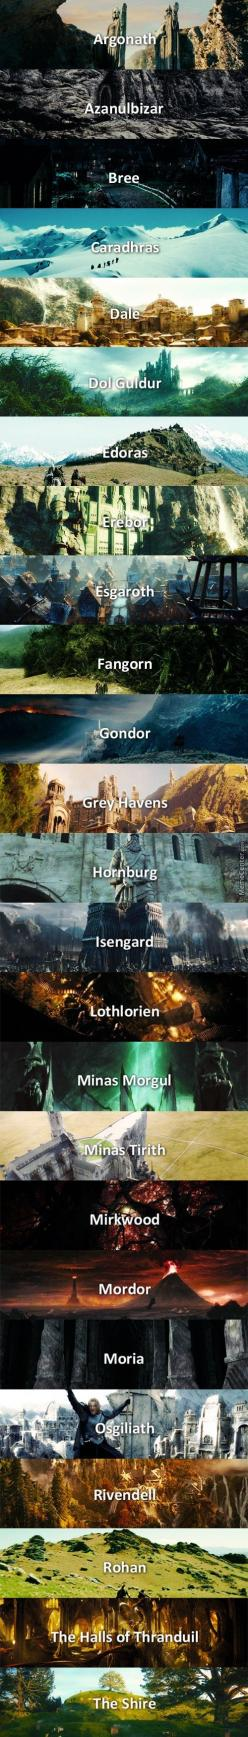 The Middle Earth Of Tolkien.